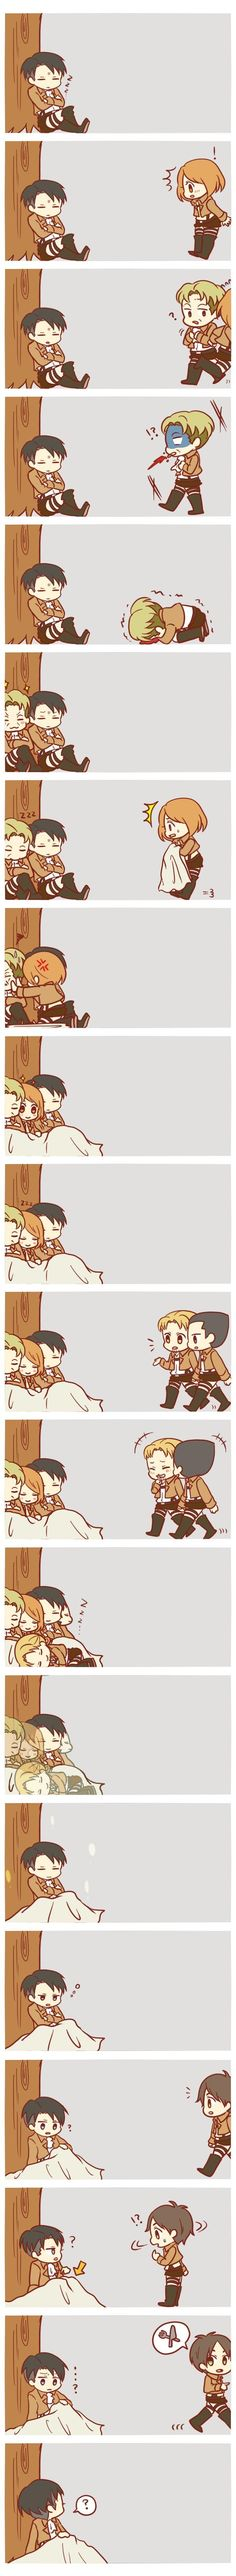 This is Cute but Sad.Levi smiled before he woke.Attack on Titan / Shingeki no Kyojin Attack On Titan Funny, Attack On Titan Fanart, Eren Y Levi, Armin, Otaku, Ereri, Levihan, Kuroko, Aot Gifs